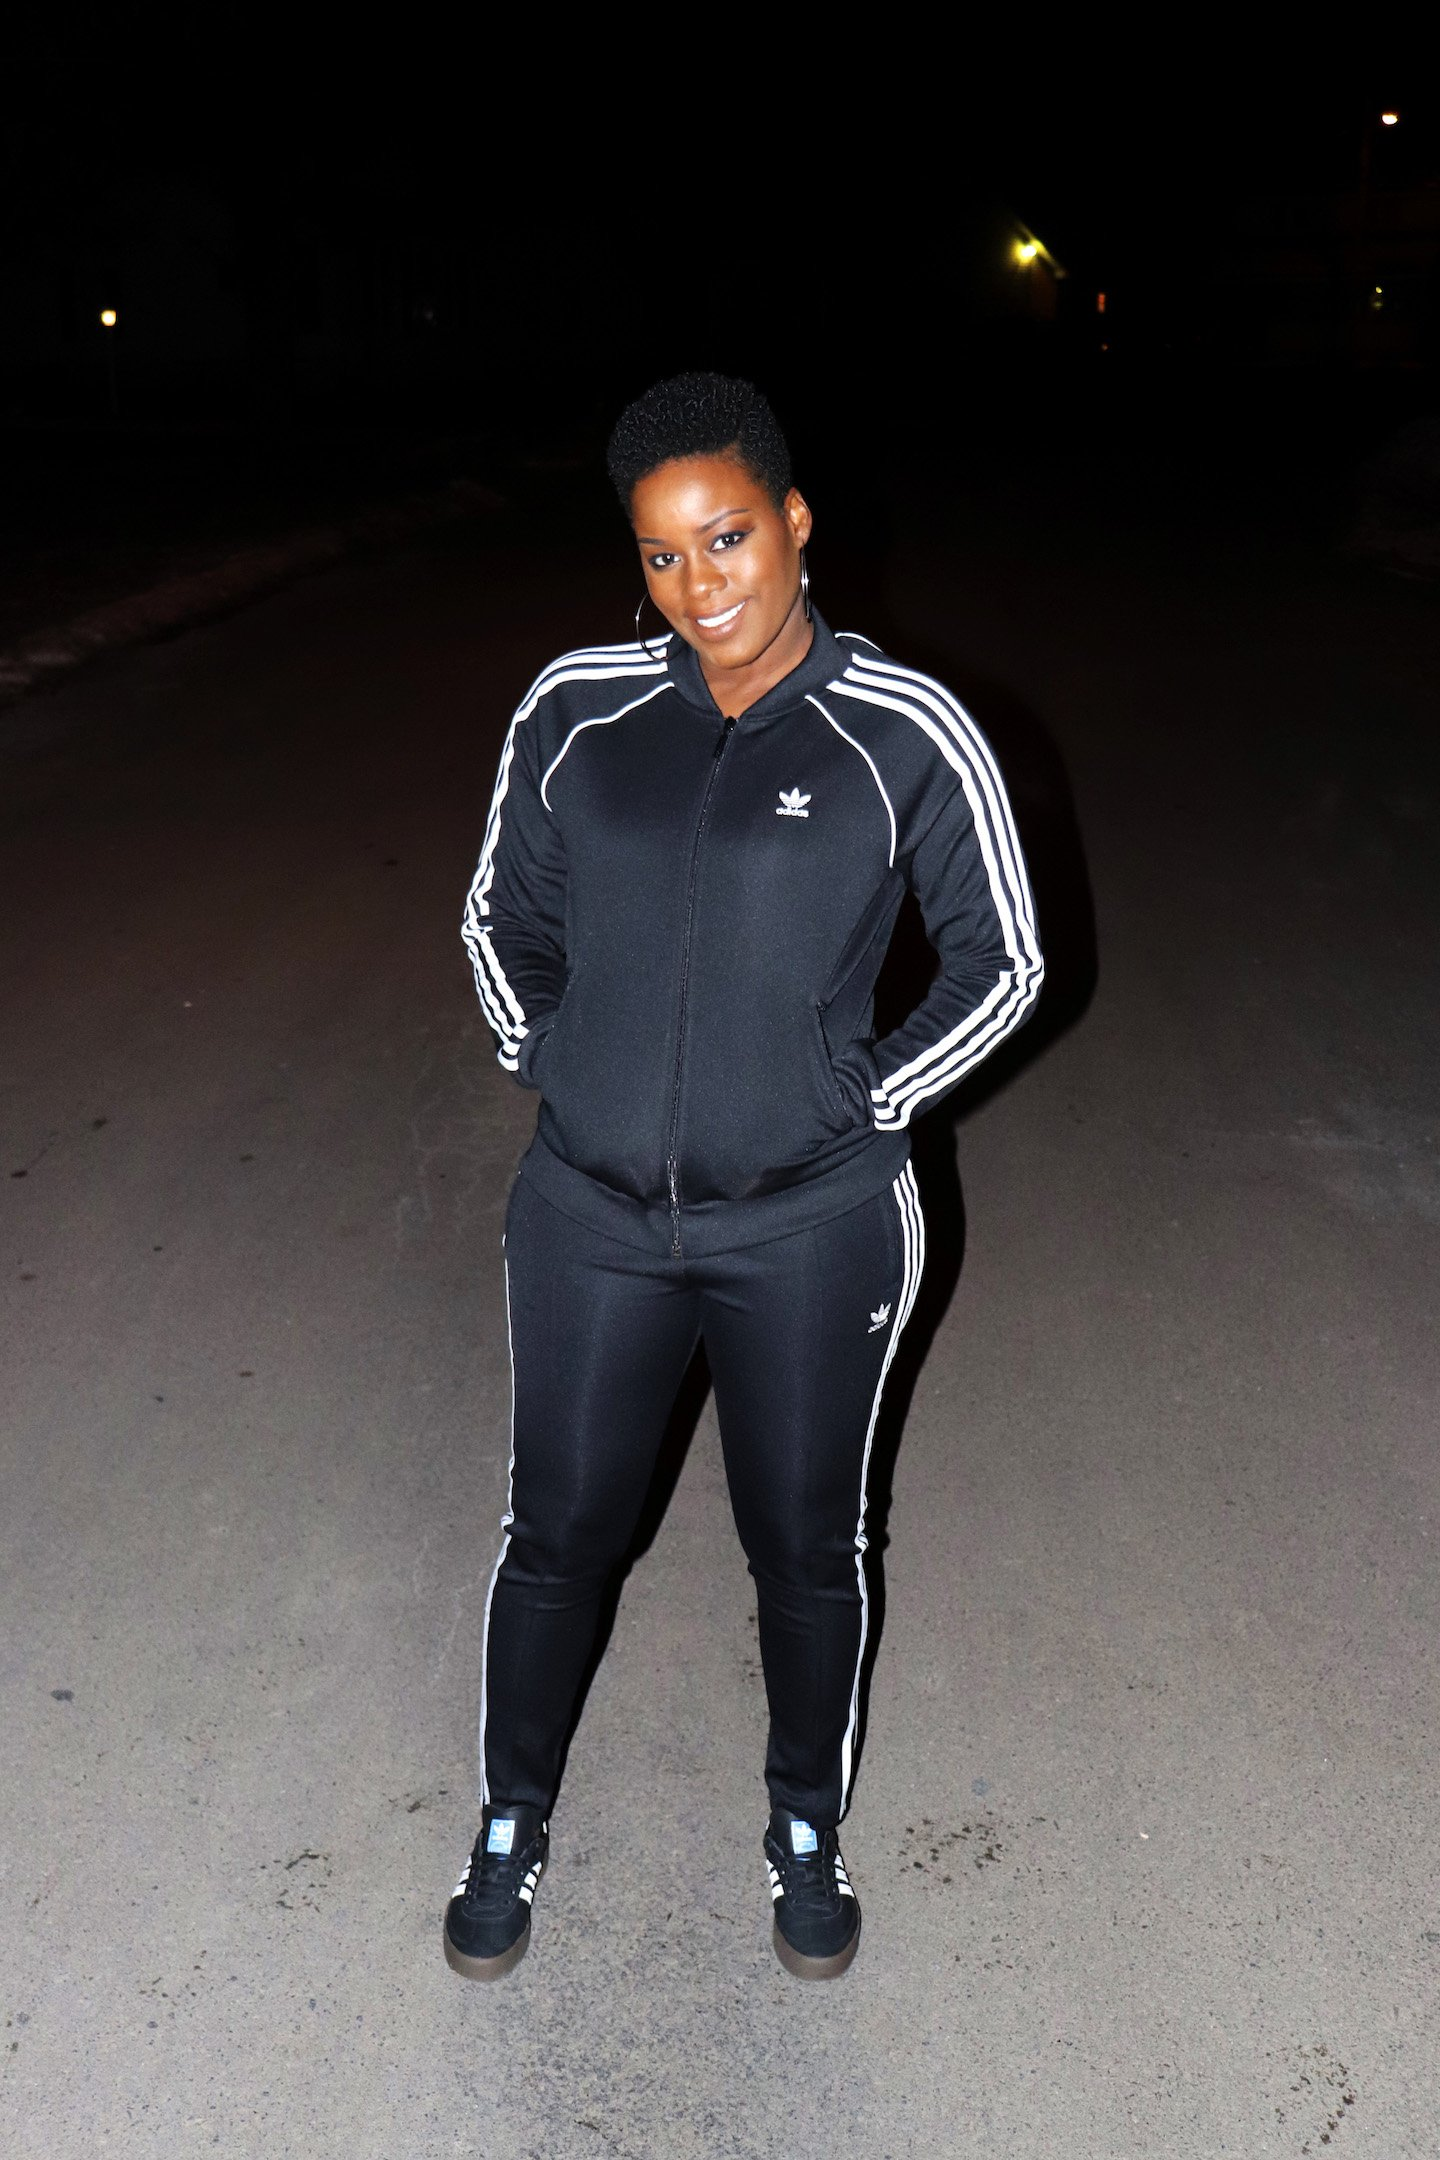 Adidas SST Track Suit and Samba Rose Sneaker Outfit